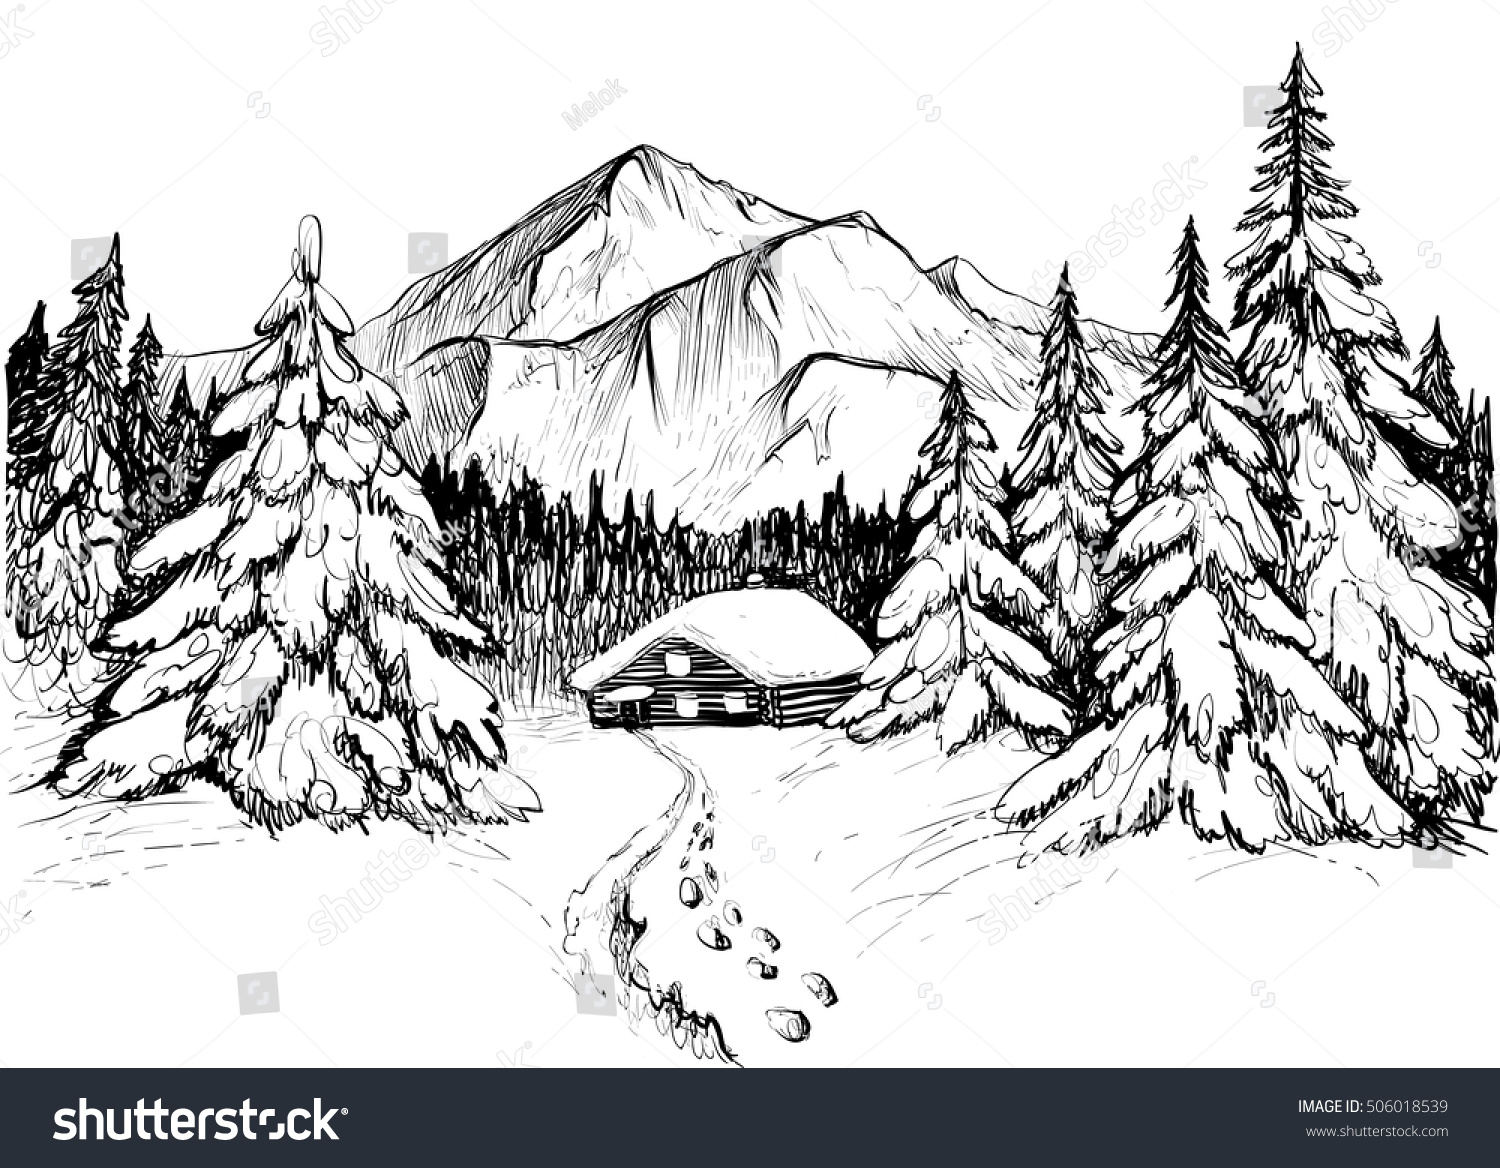 Royalty Free Winter Forest In Mountains Sketch